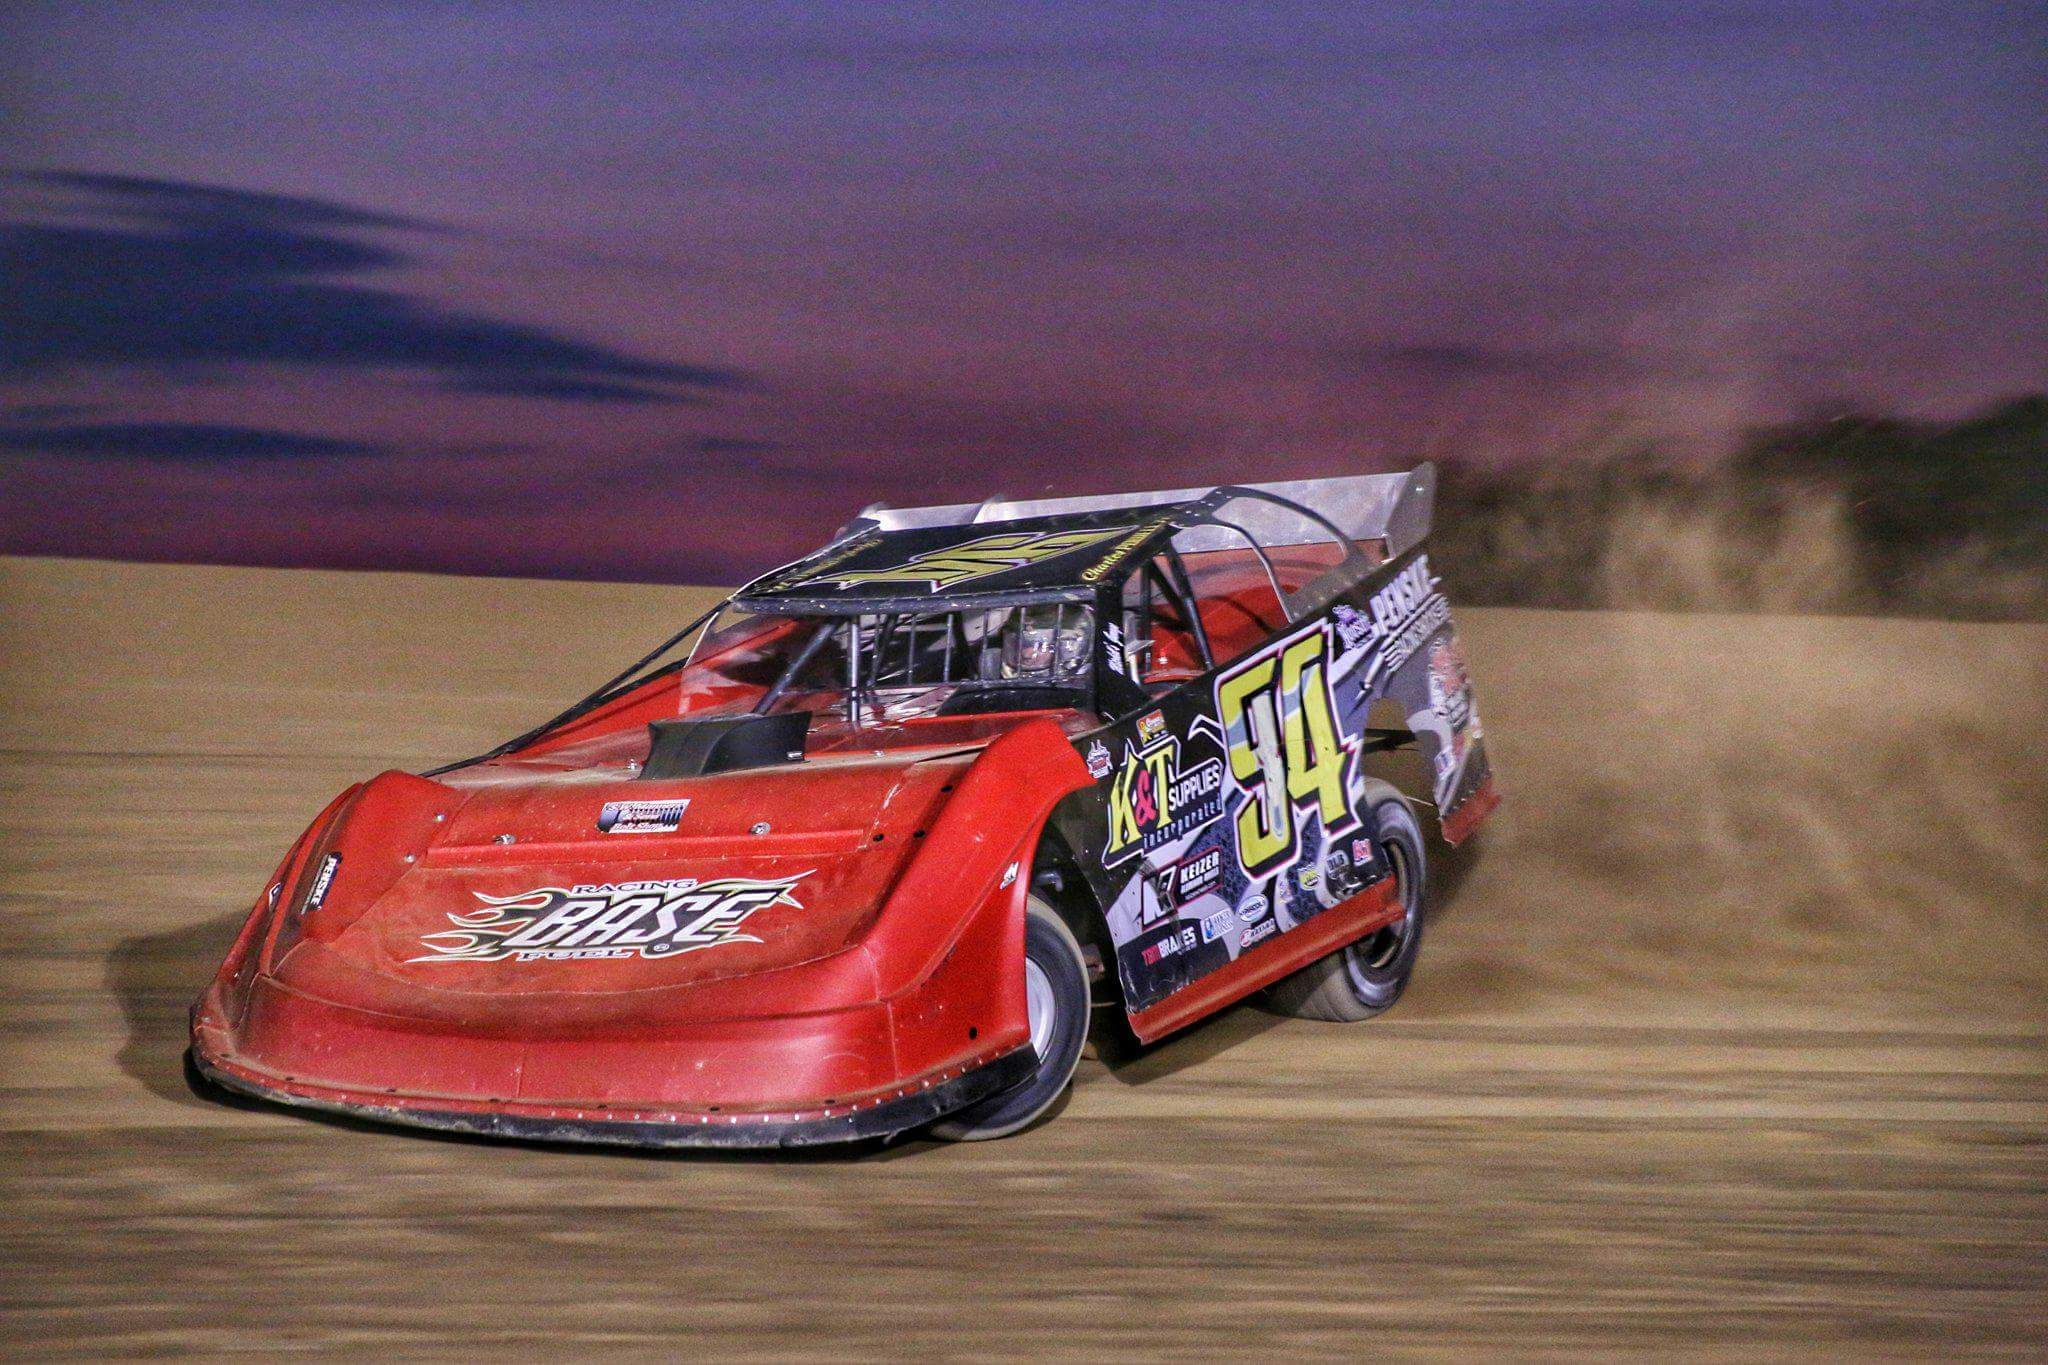 Watch the latest model stock cars zoom around a dirt race